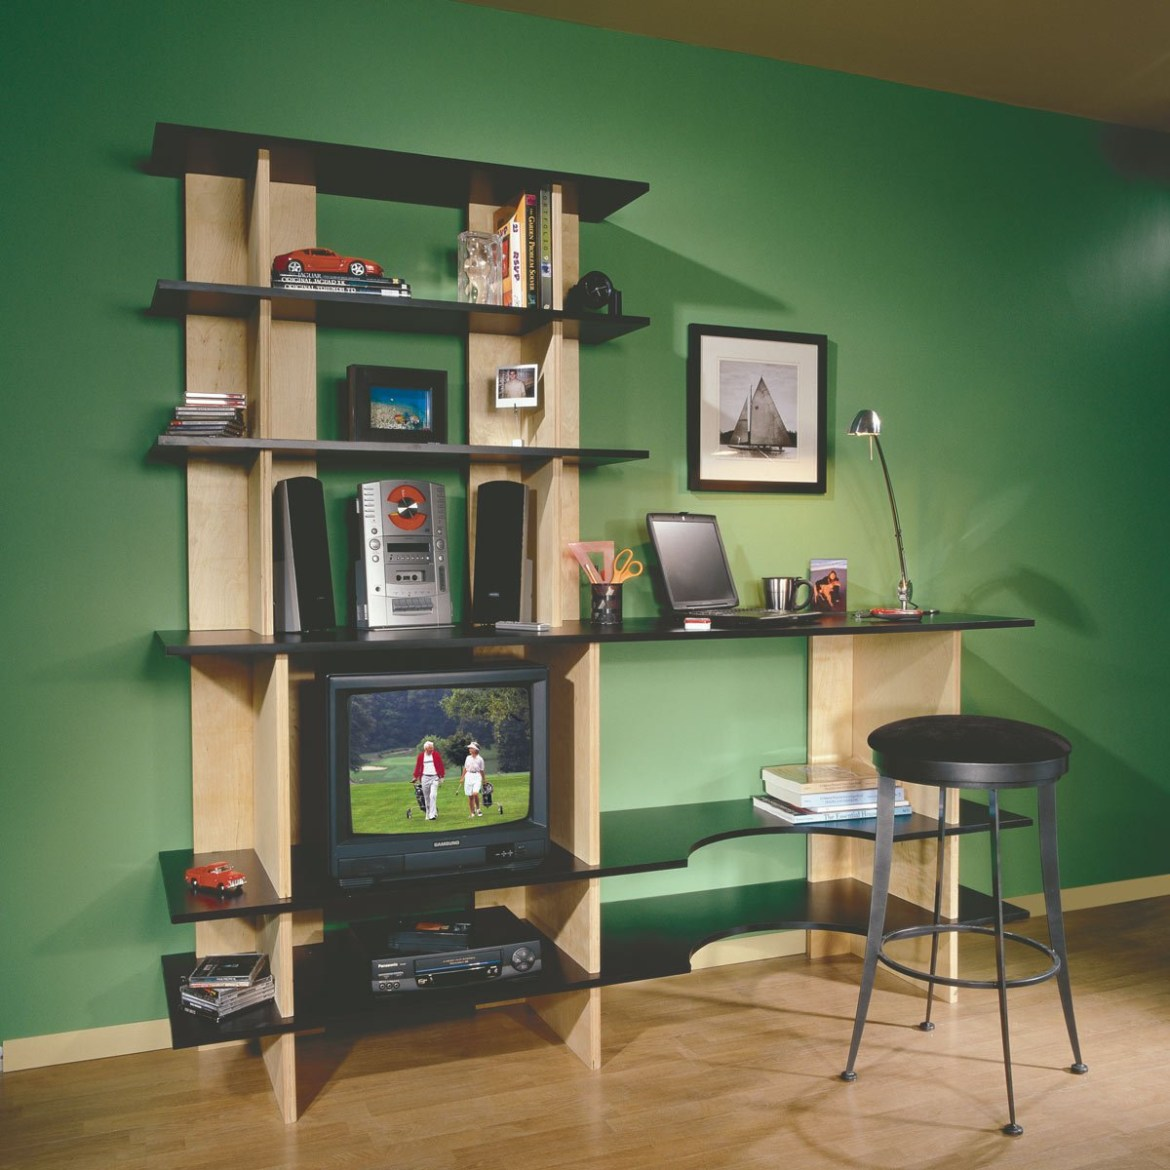 A beautiful baltic birch plywood for modular shelving, storage and desk unit